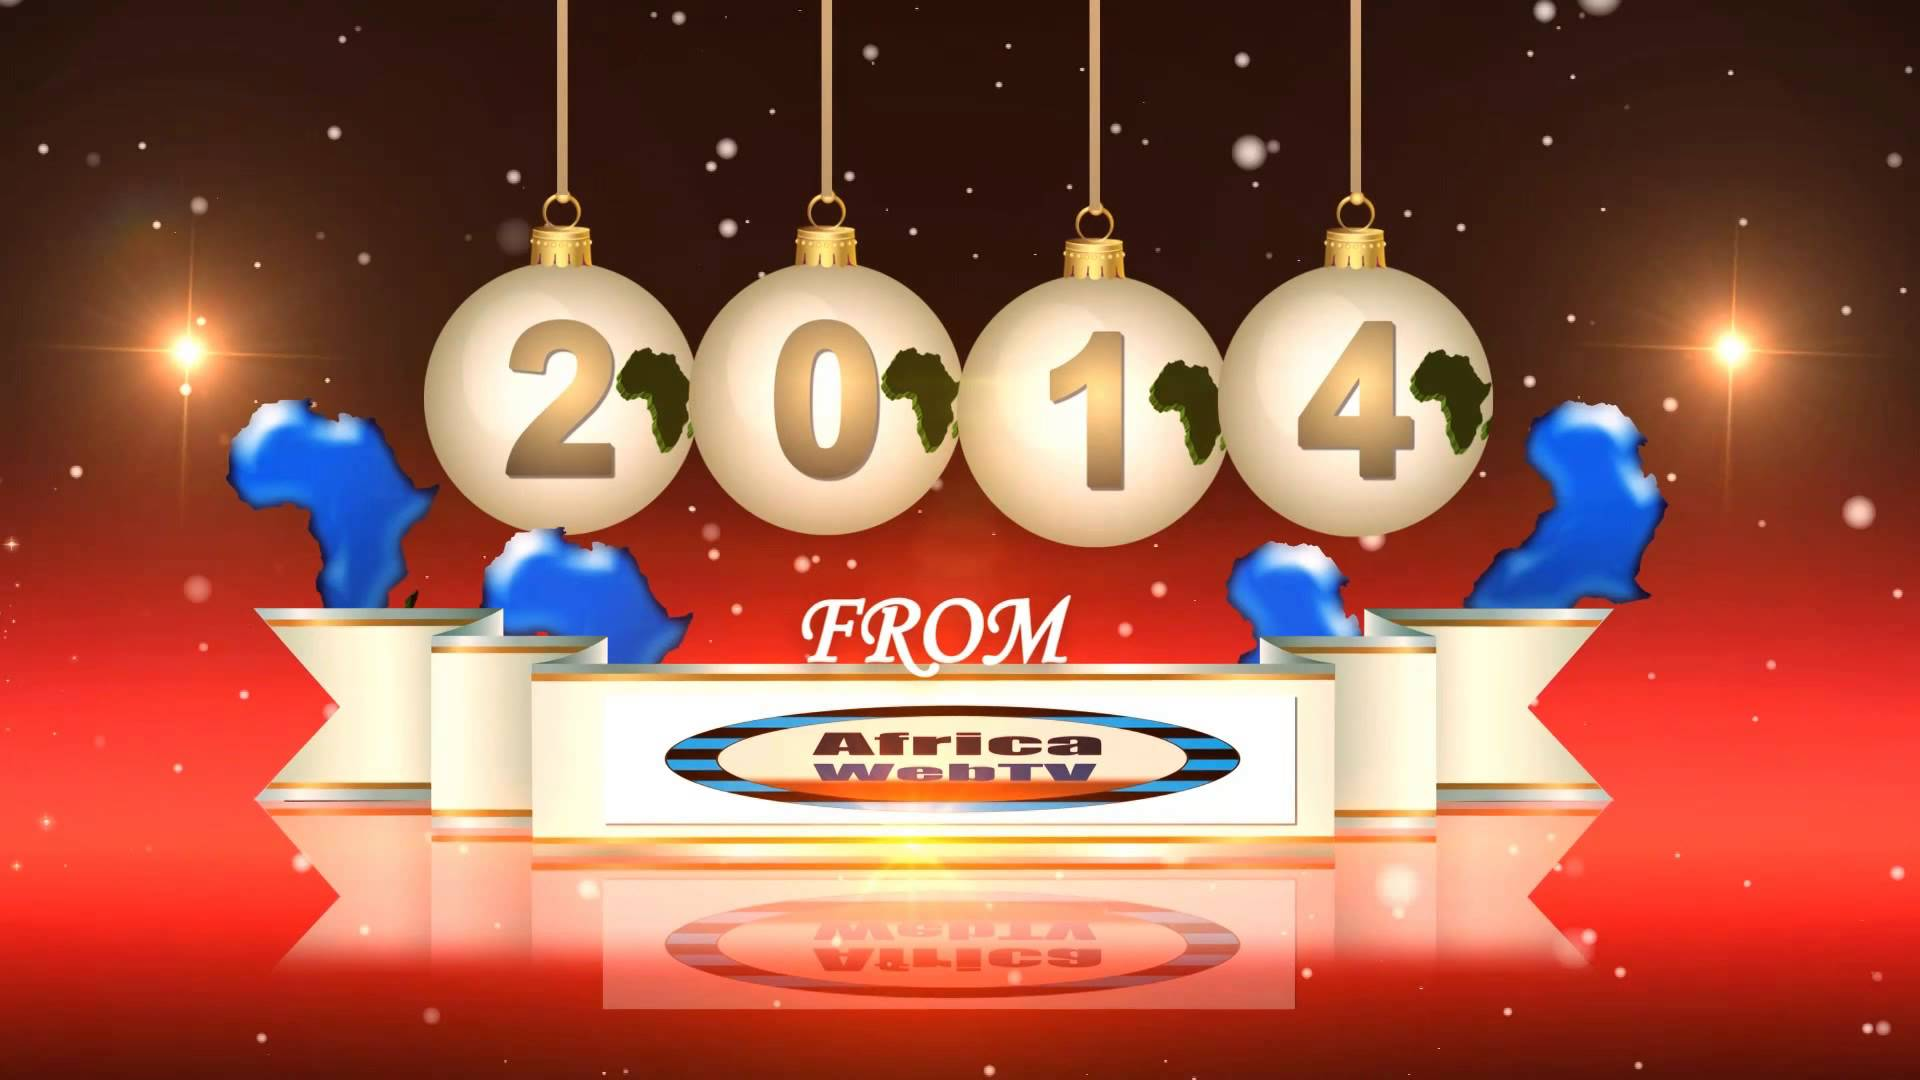 Africa Web TV wishes you a Happy 2014